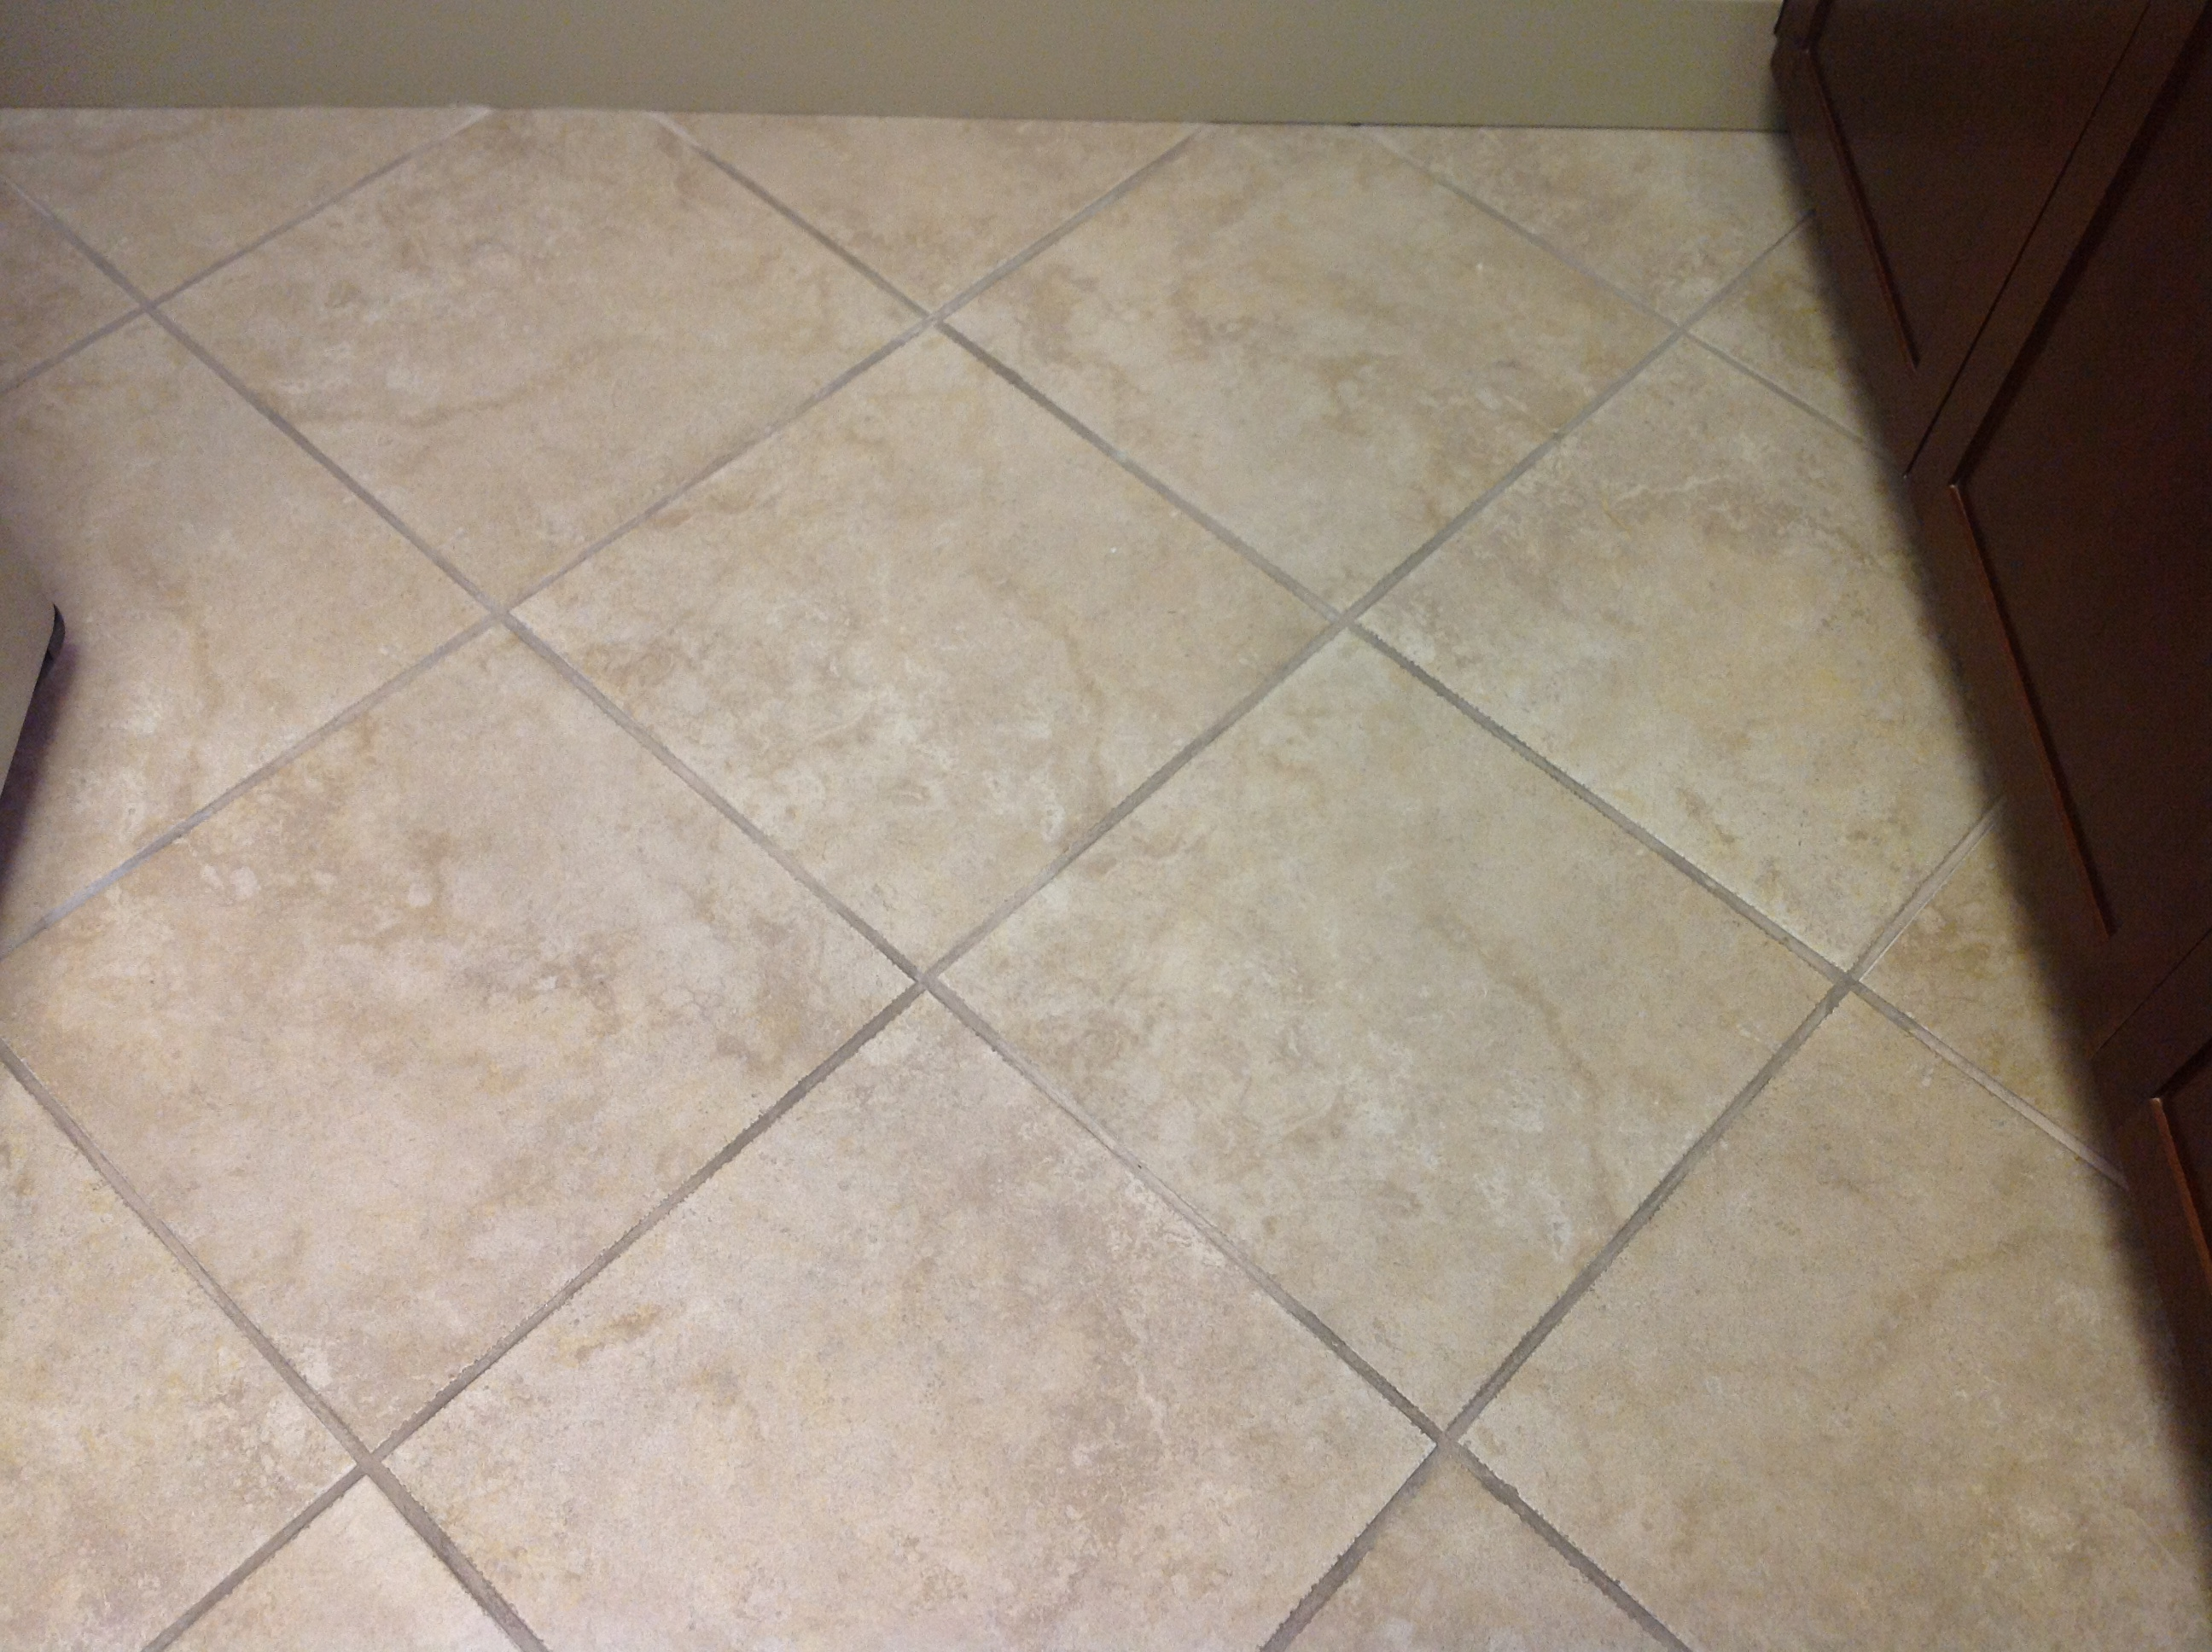 Cleaned Porcelain Tile